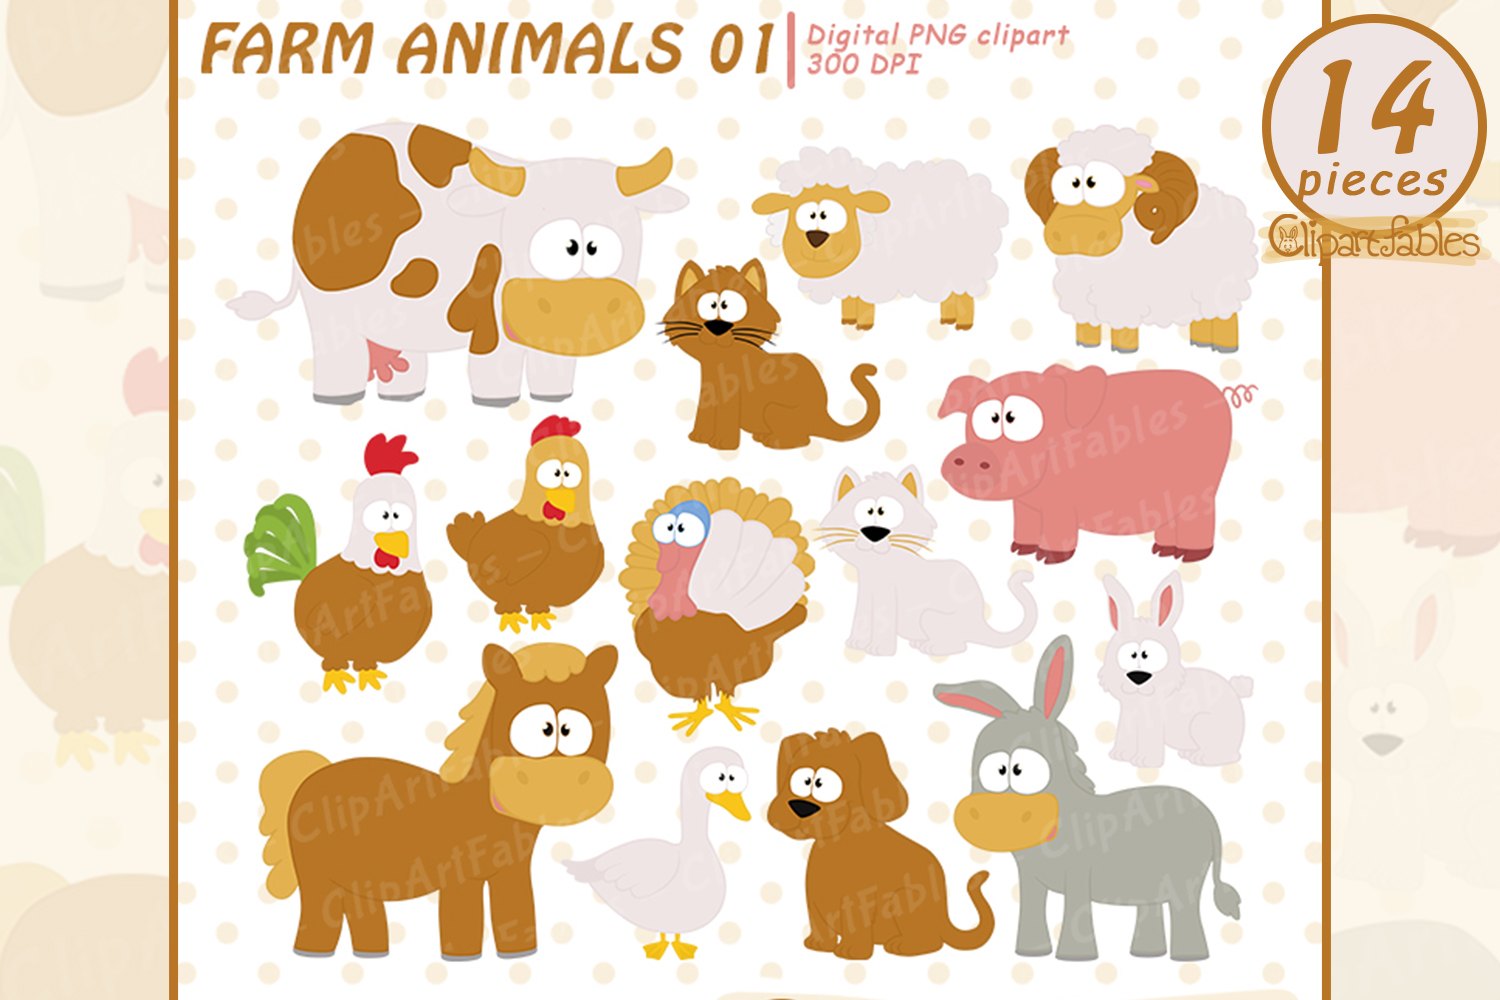 Cute farm animal clipart jpg freeuse download Farm clip art set, Barnyard clipart, cute farm animals jpg freeuse download